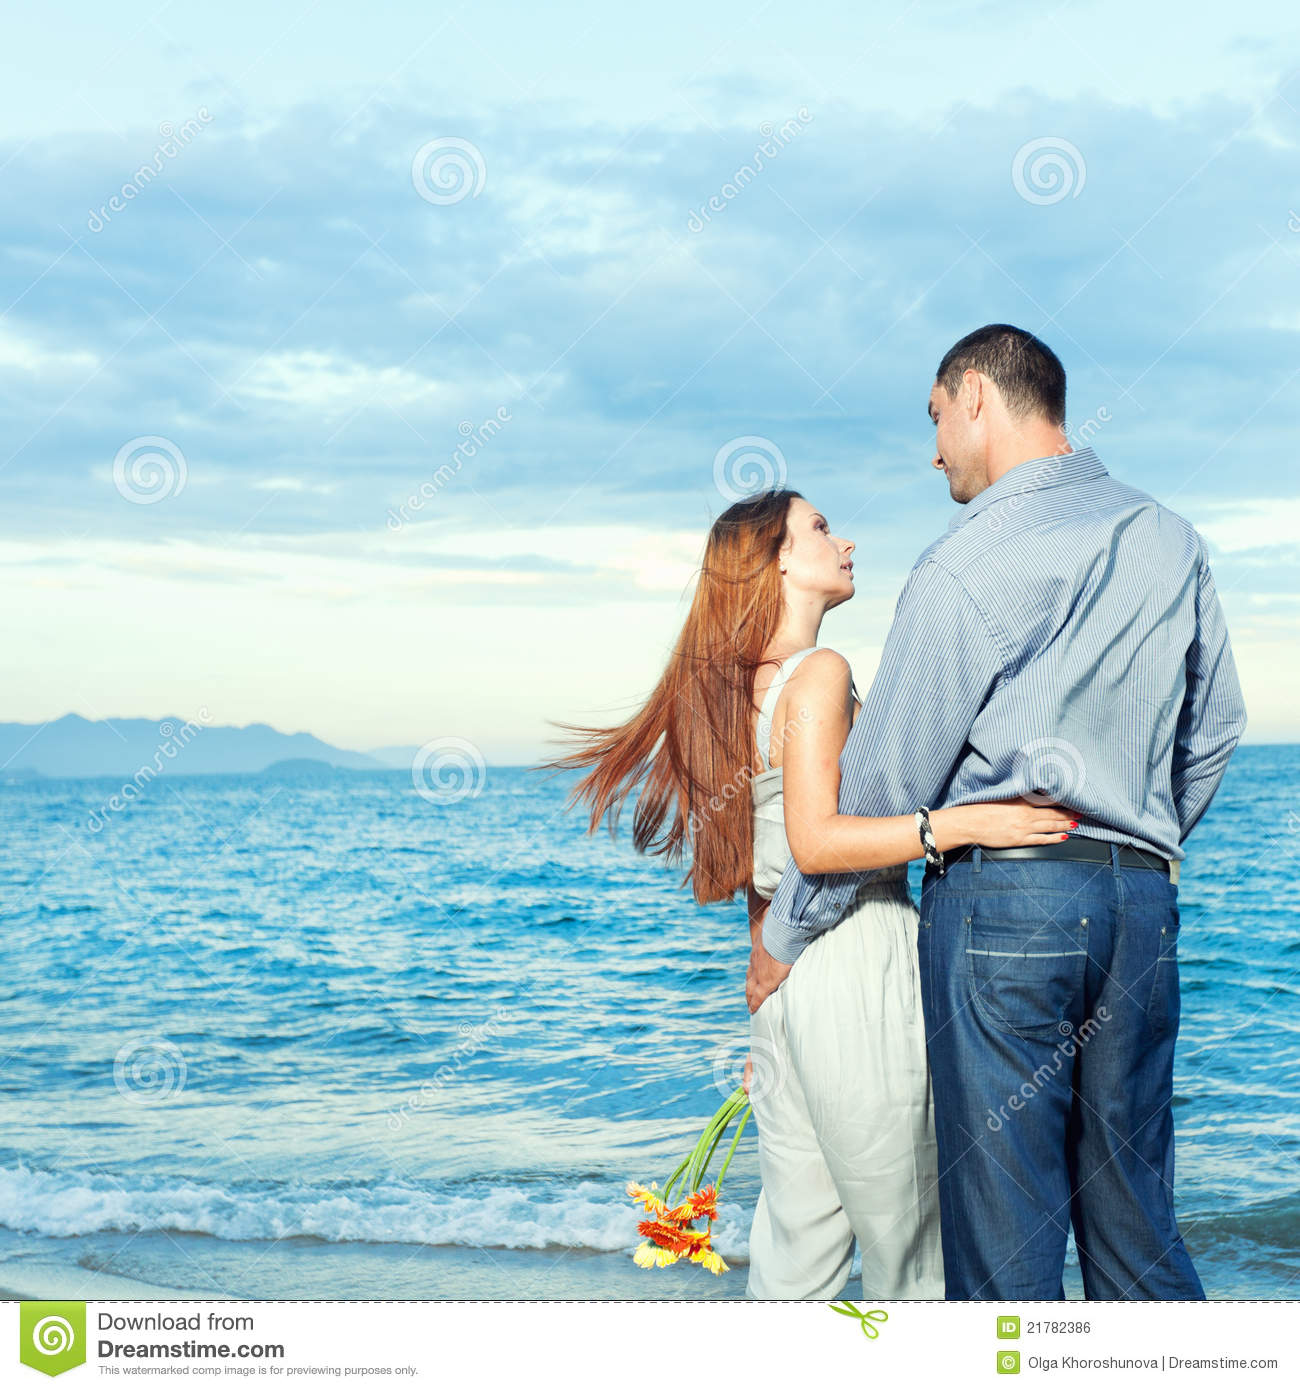 Couple On The Beach Stock Photo. Image Of Flowers, Back